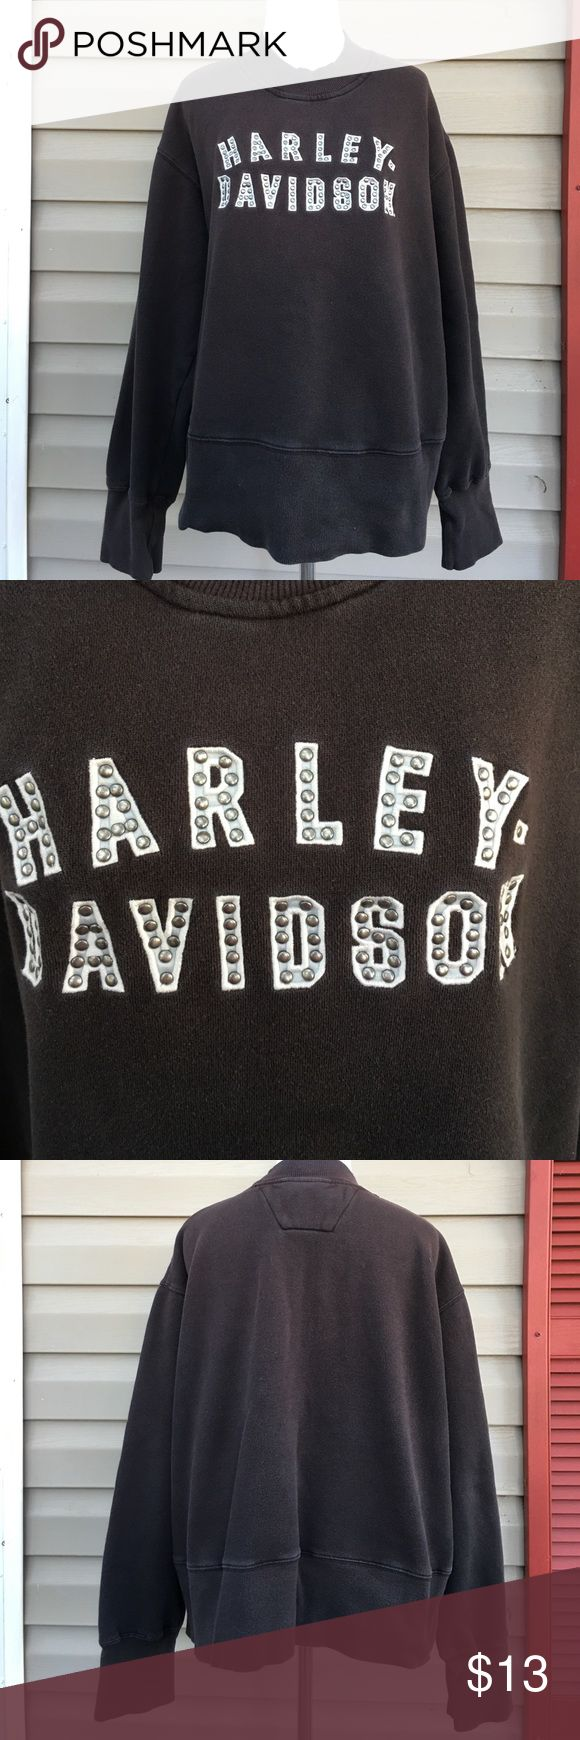 """Harley Davidson women's black sweatshirt Nice heavyweight sweatshirt with logo in white with silver rivets. 80% cotton 20% polyester. No stains or holes, some fading. Measures 27""""W x 25"""" L Harley-Davidson Tops Sweatshirts & Hoodies"""